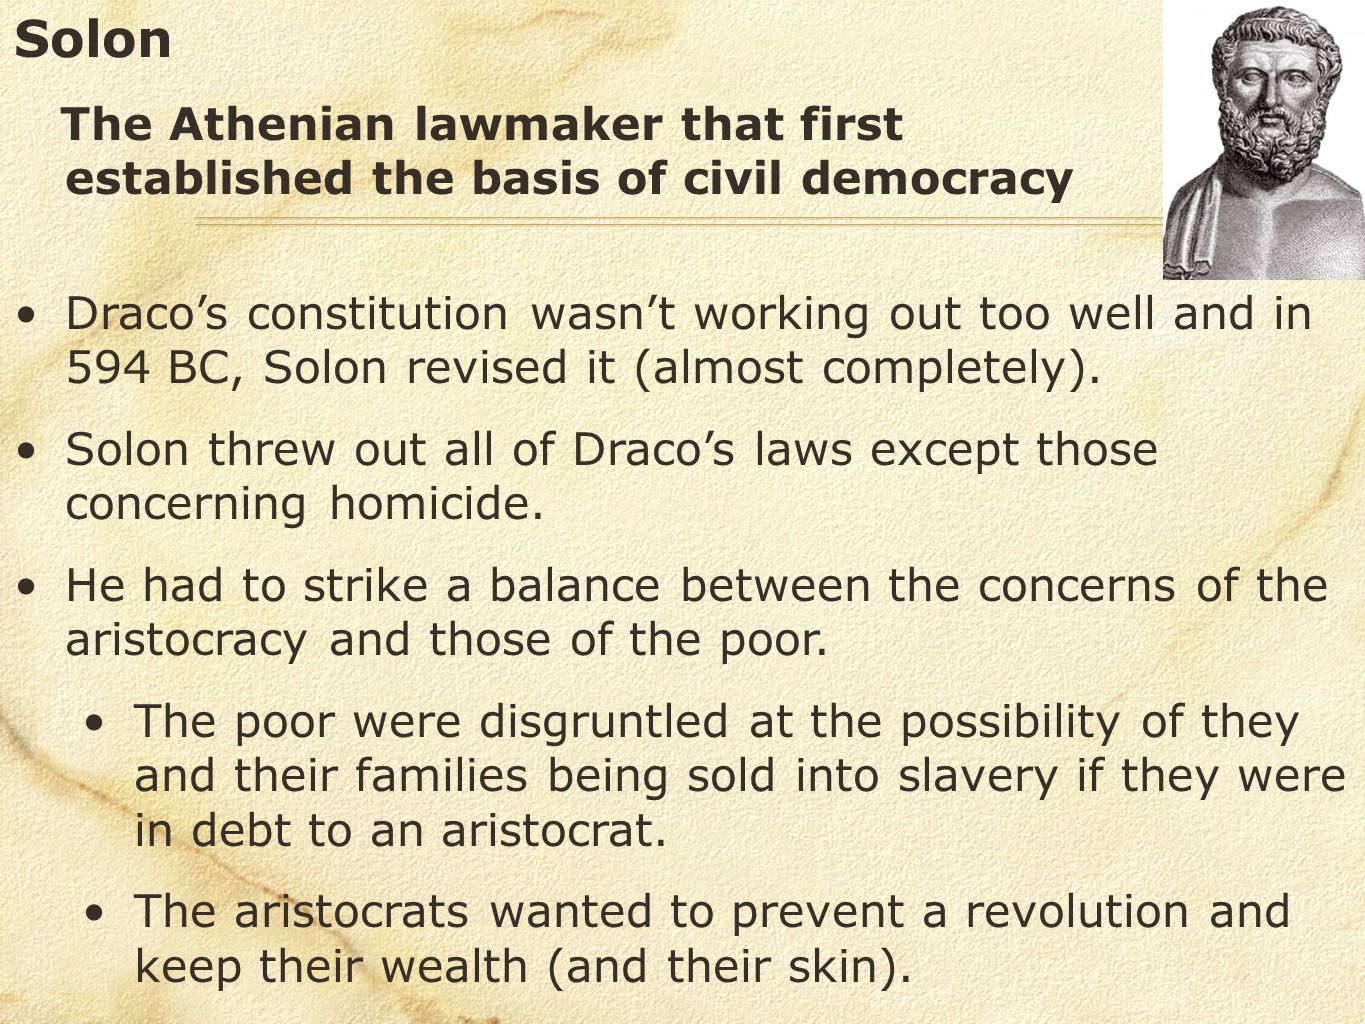 Solon The Athenian lawmaker that first established the basis of civil democracy.